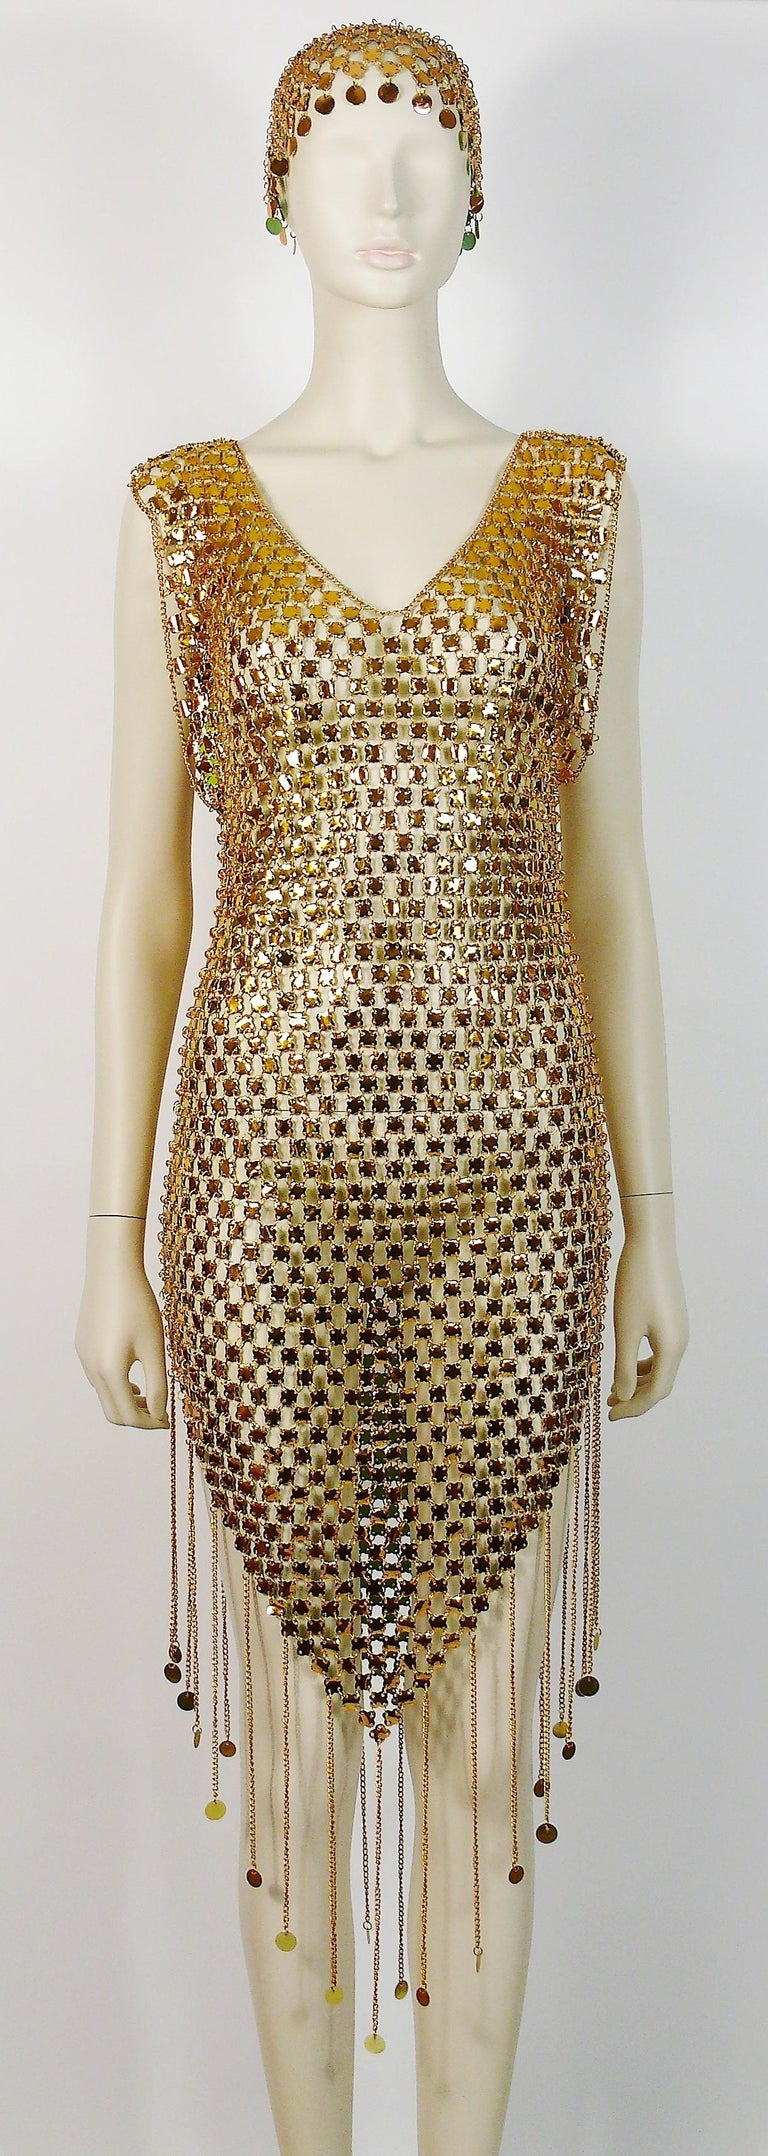 Women's 1970s Gold Toned Rhodhoid Chainmail Fringed Dress and Hat For Sale